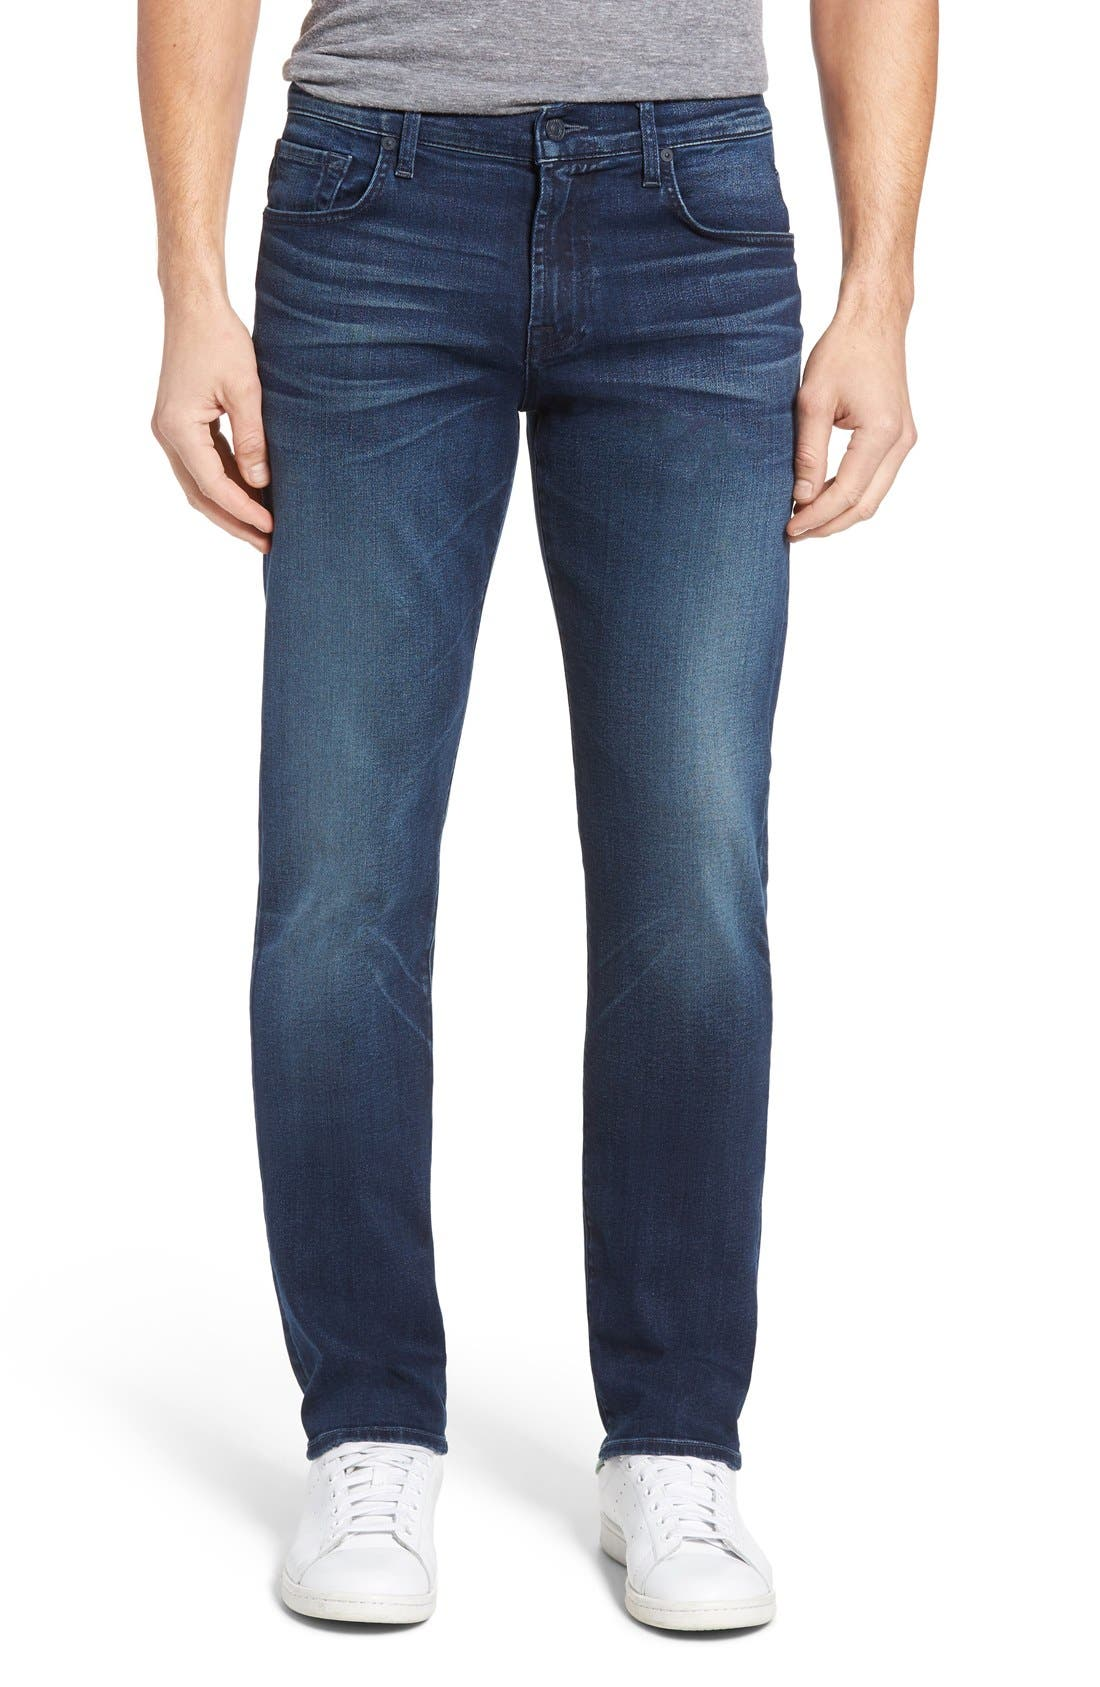 Slimmy Luxe Performance Slim Fit Jeans,                             Main thumbnail 1, color,                             Belfast